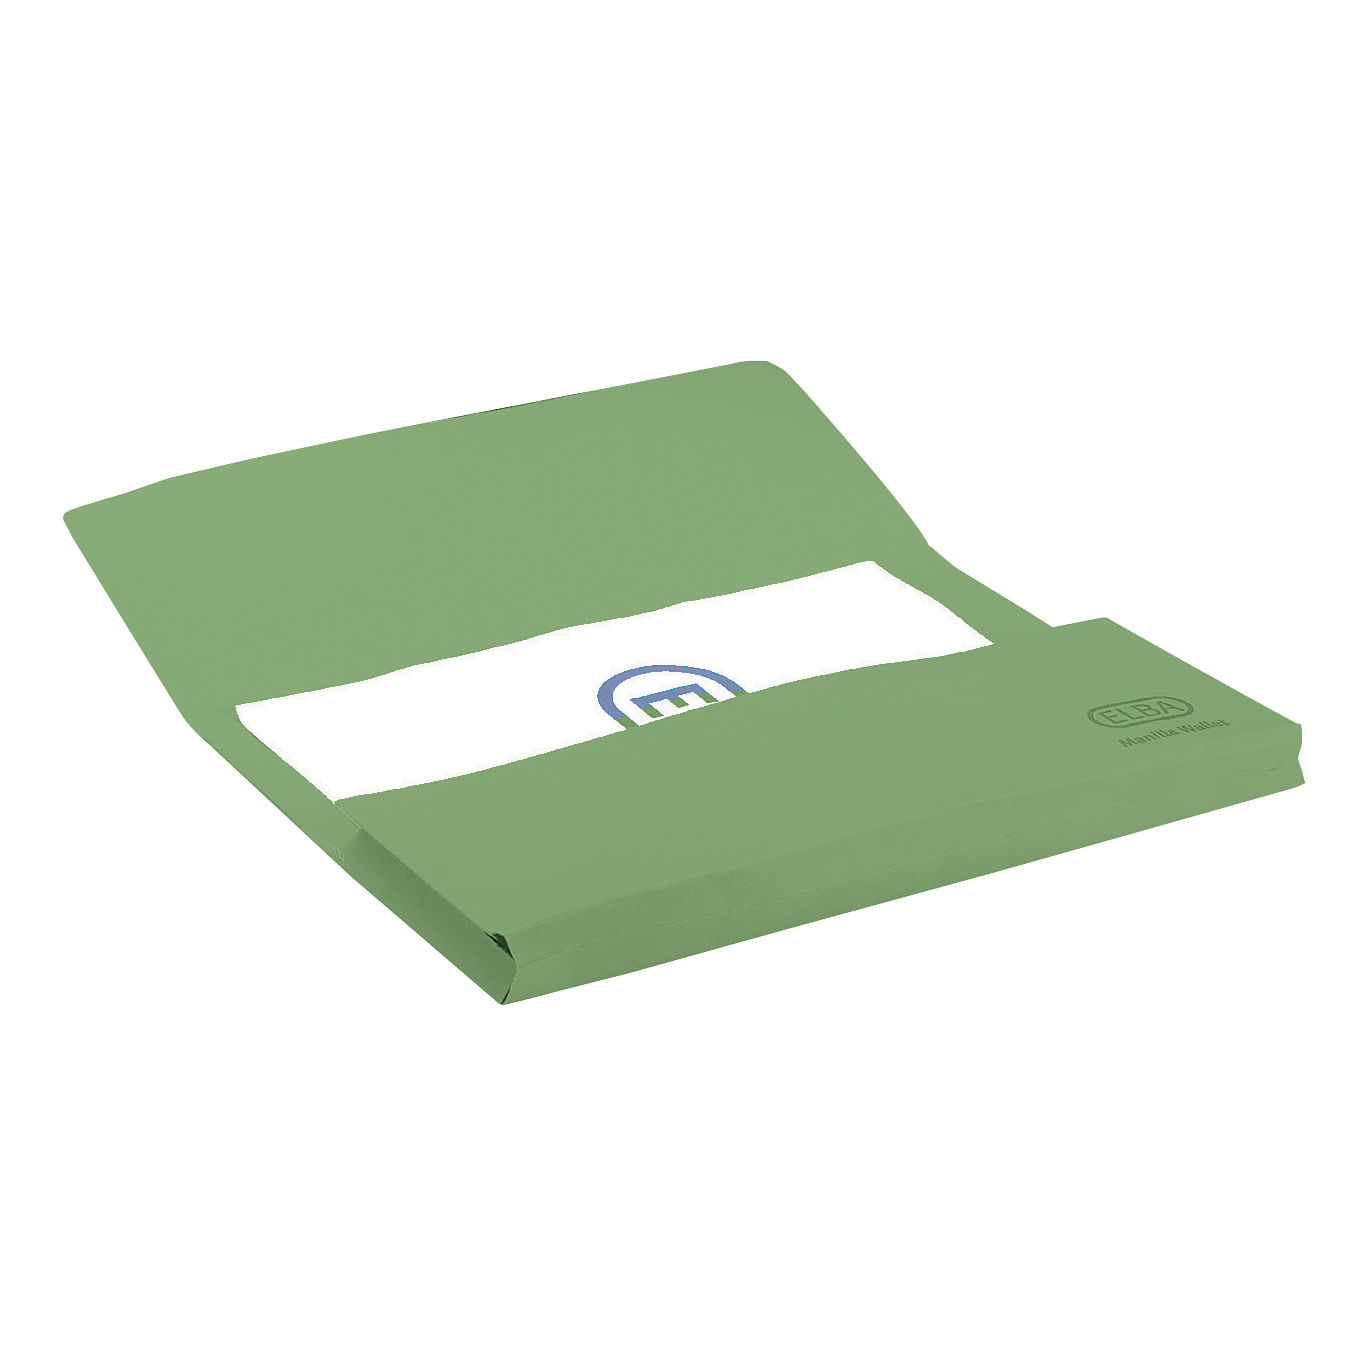 Elba StrongLine Manilla Document Wallet 320gsm 32mm Foolscap Green Ref 100090268 [Pack 25]